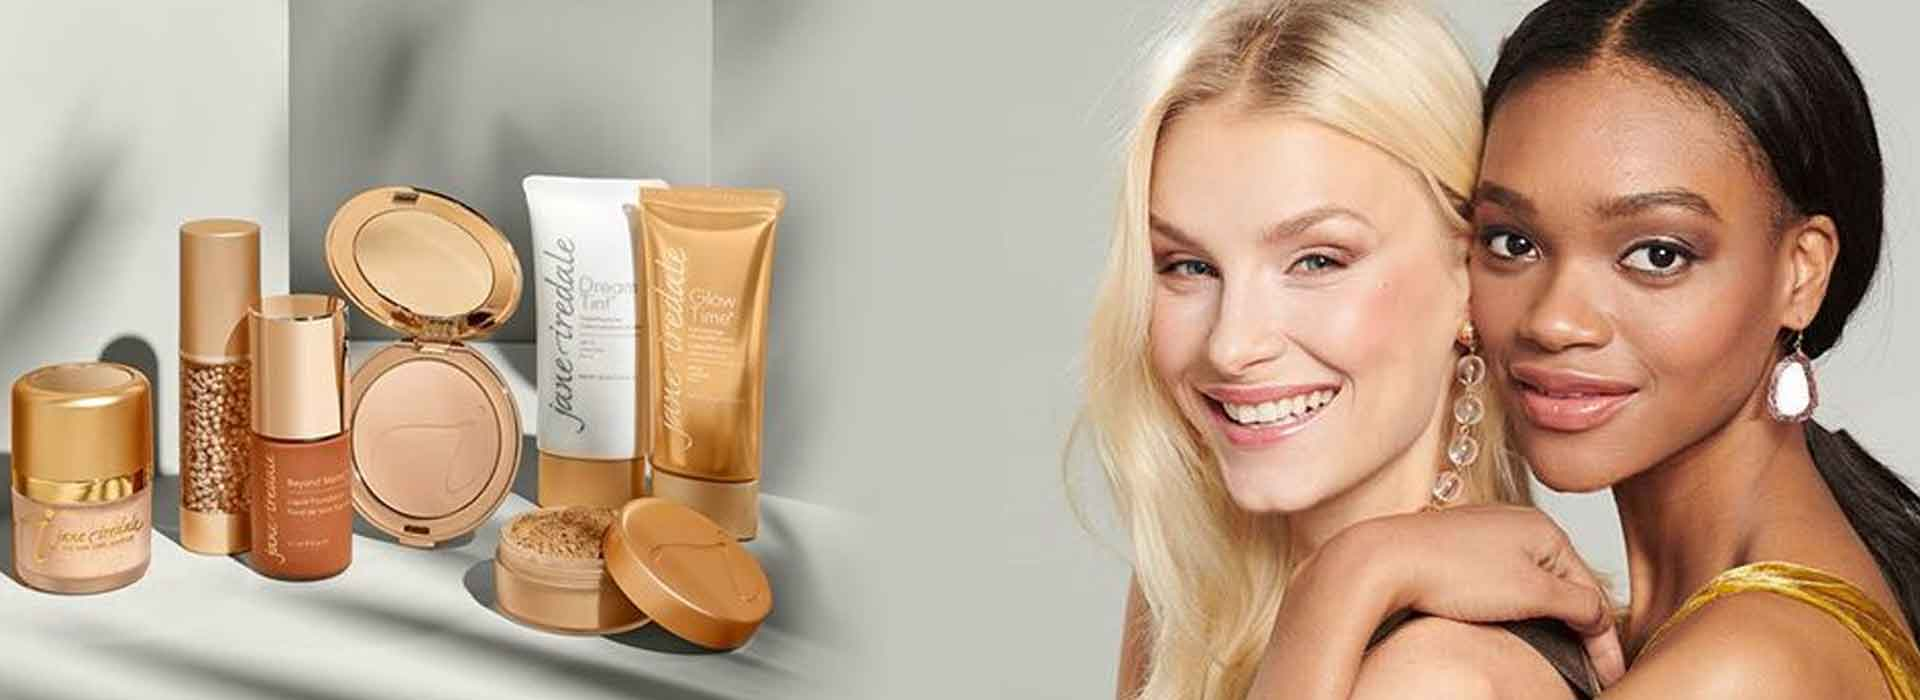 Jane Iredale - The Skincare Makeup